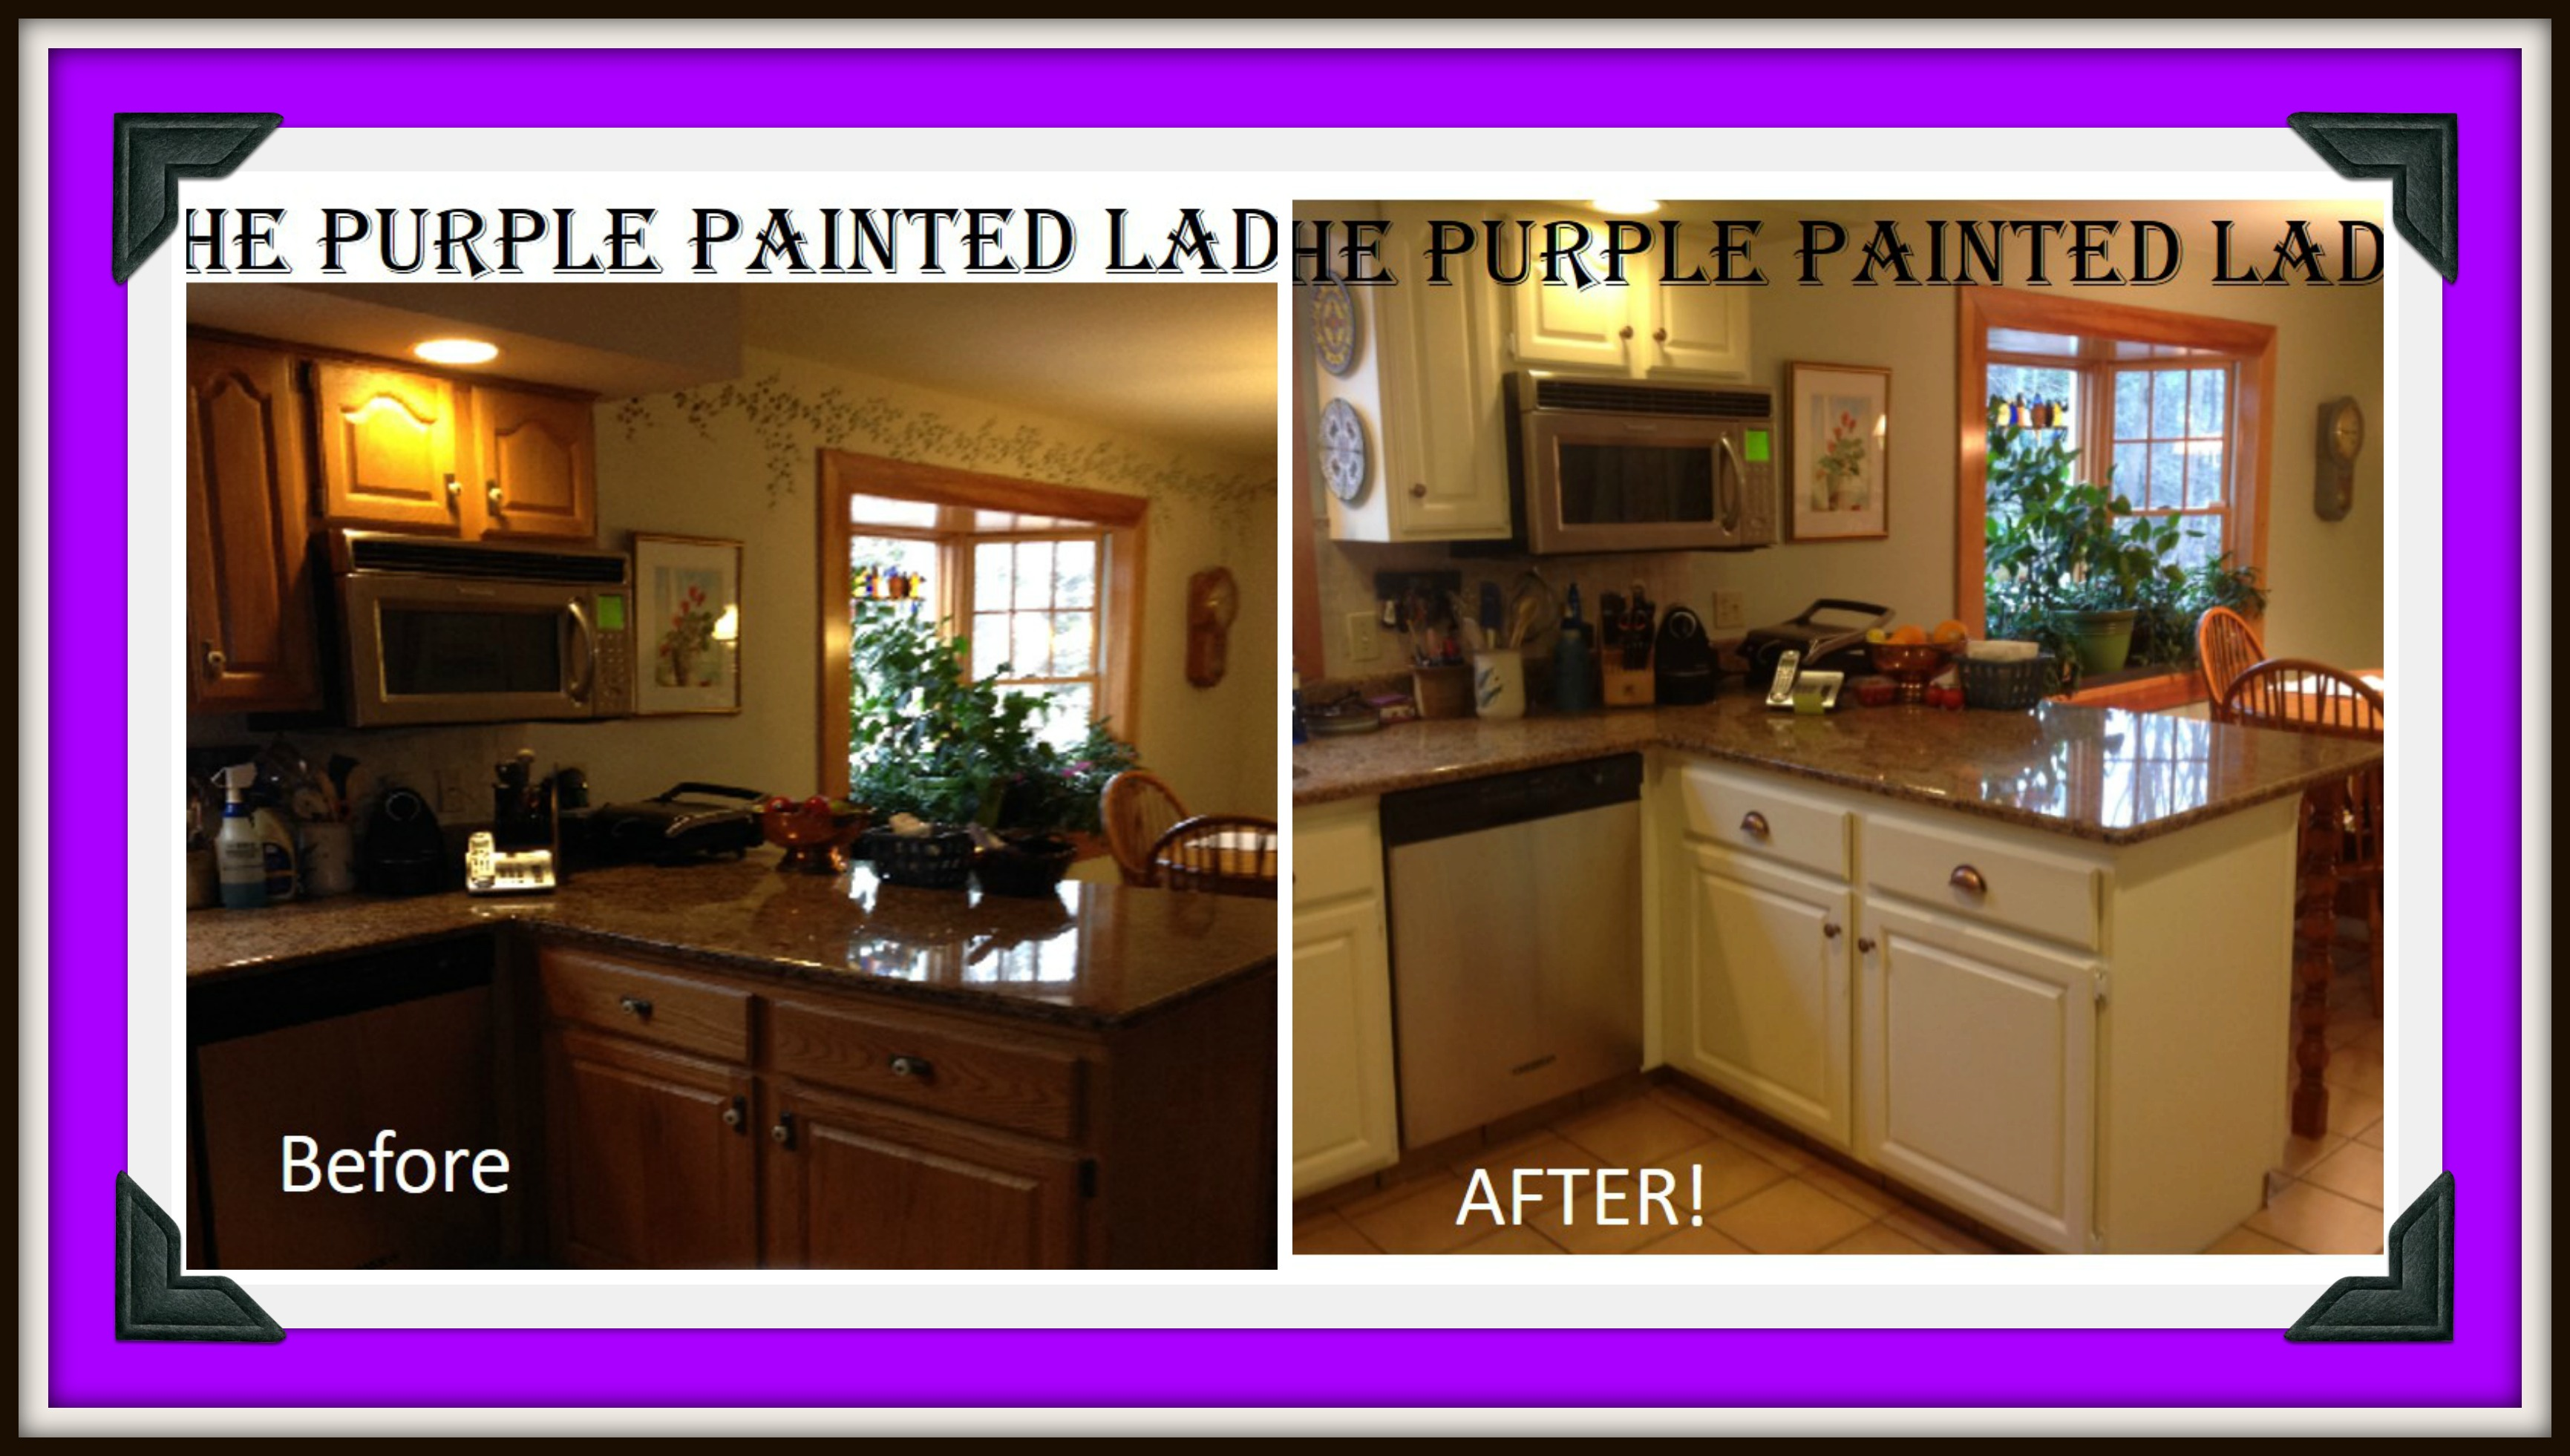 chalk paint for kitchen cabinets. PicMonkey Collage The Purple Painted Lady Caninets susan Old White Do Your Kitchen Cabinets Look Tired